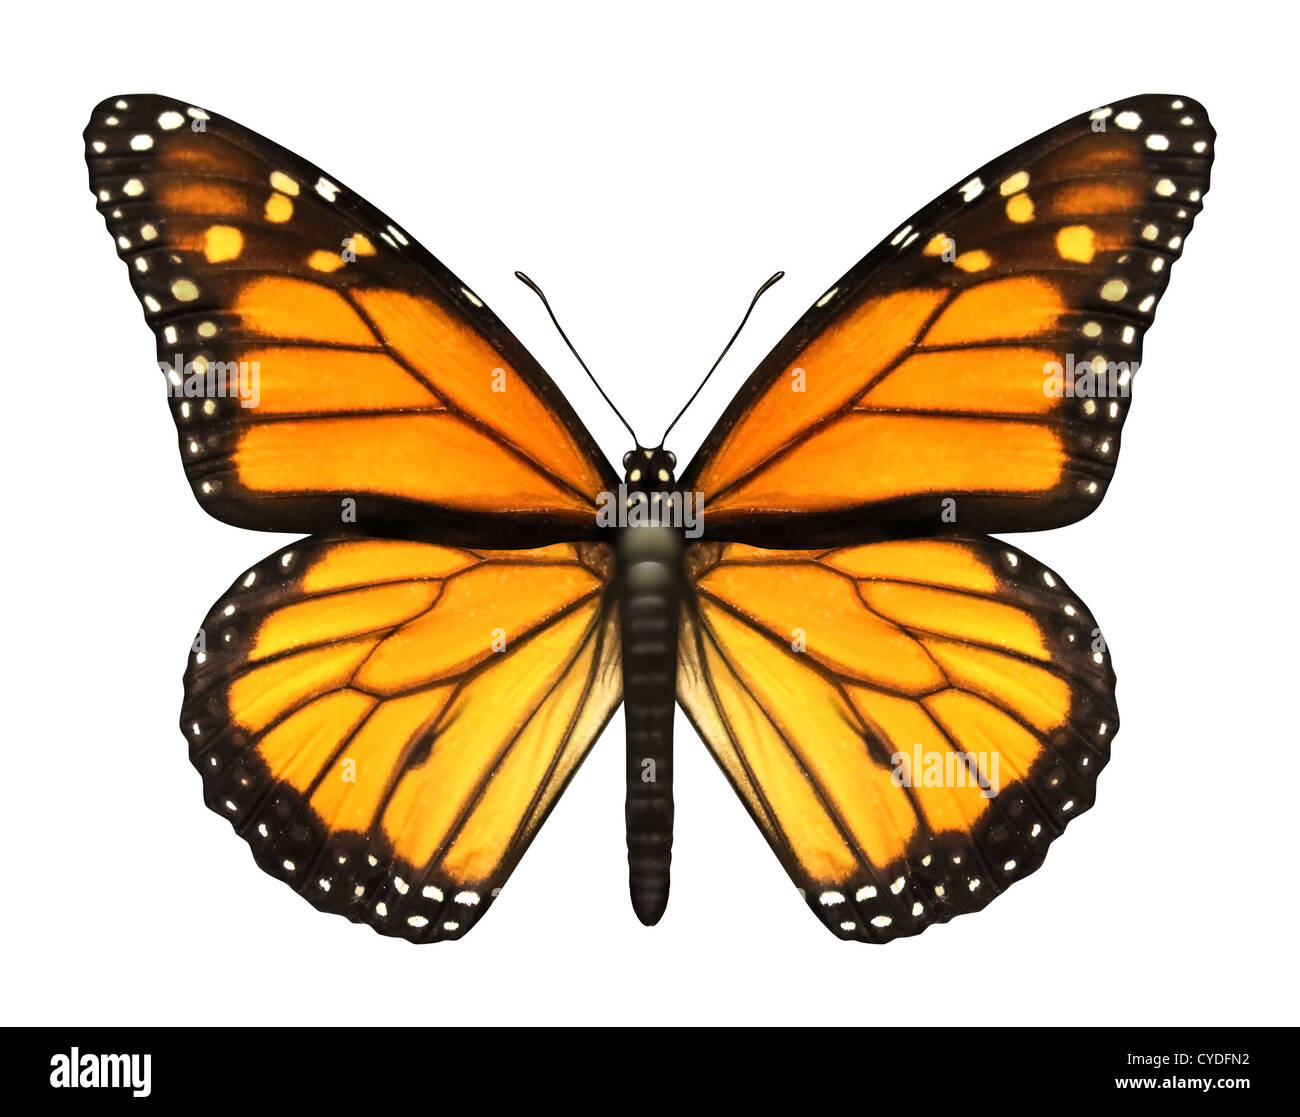 Monarch Butterfly with open wings in a top view as a flying migratory insect butterflies that represents summer - Stock Image